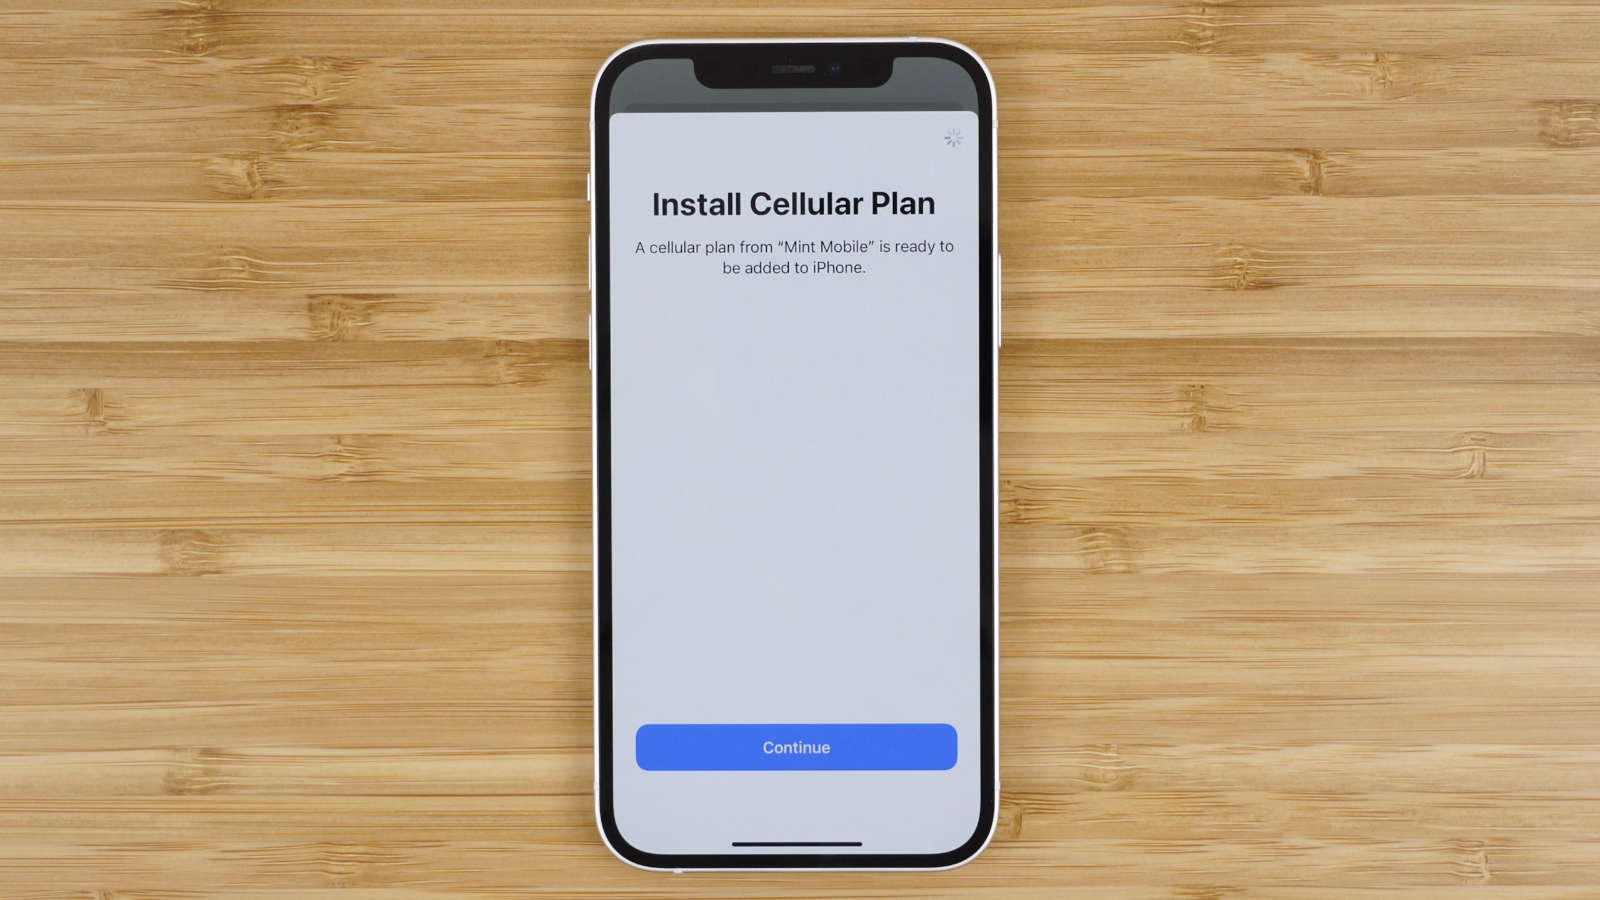 Install Mint Mobile cellular plan on iPhone using eSIM